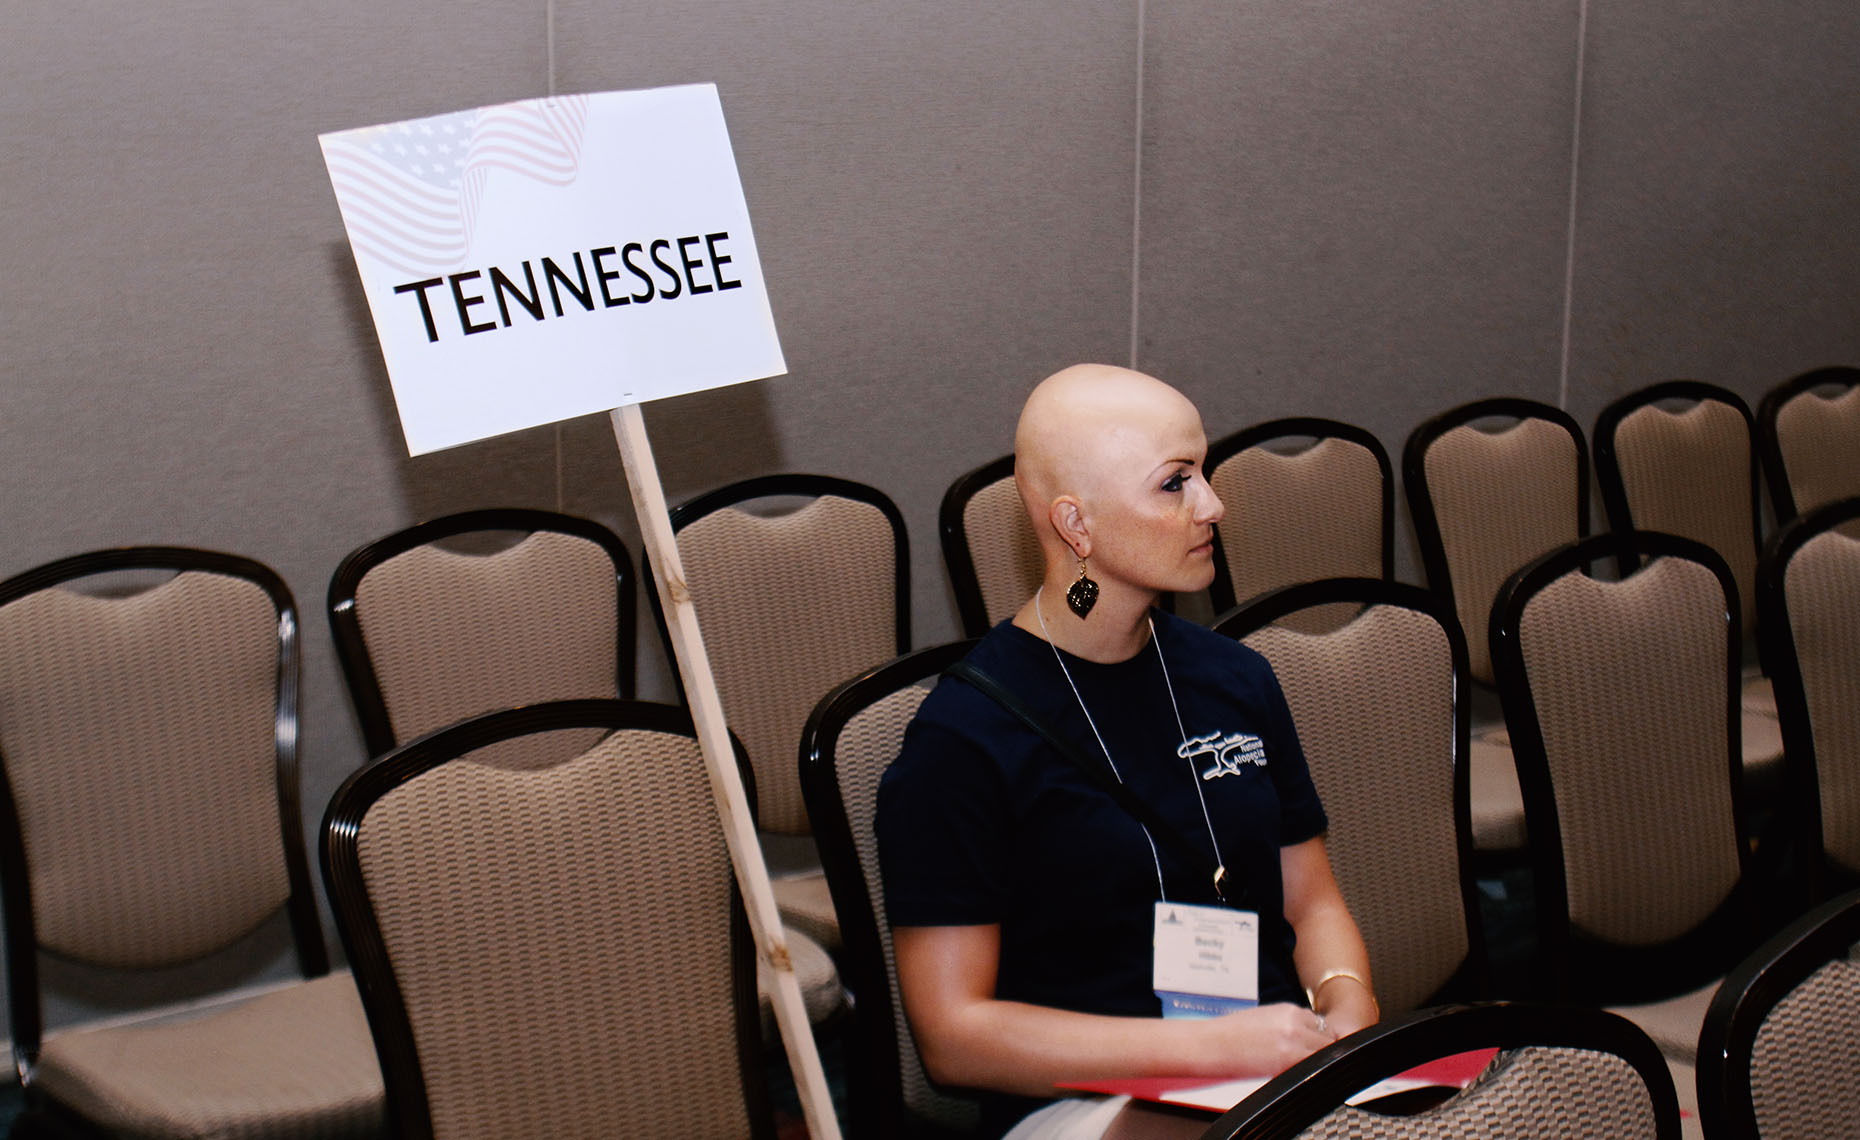 Bald Woman from Tennessee